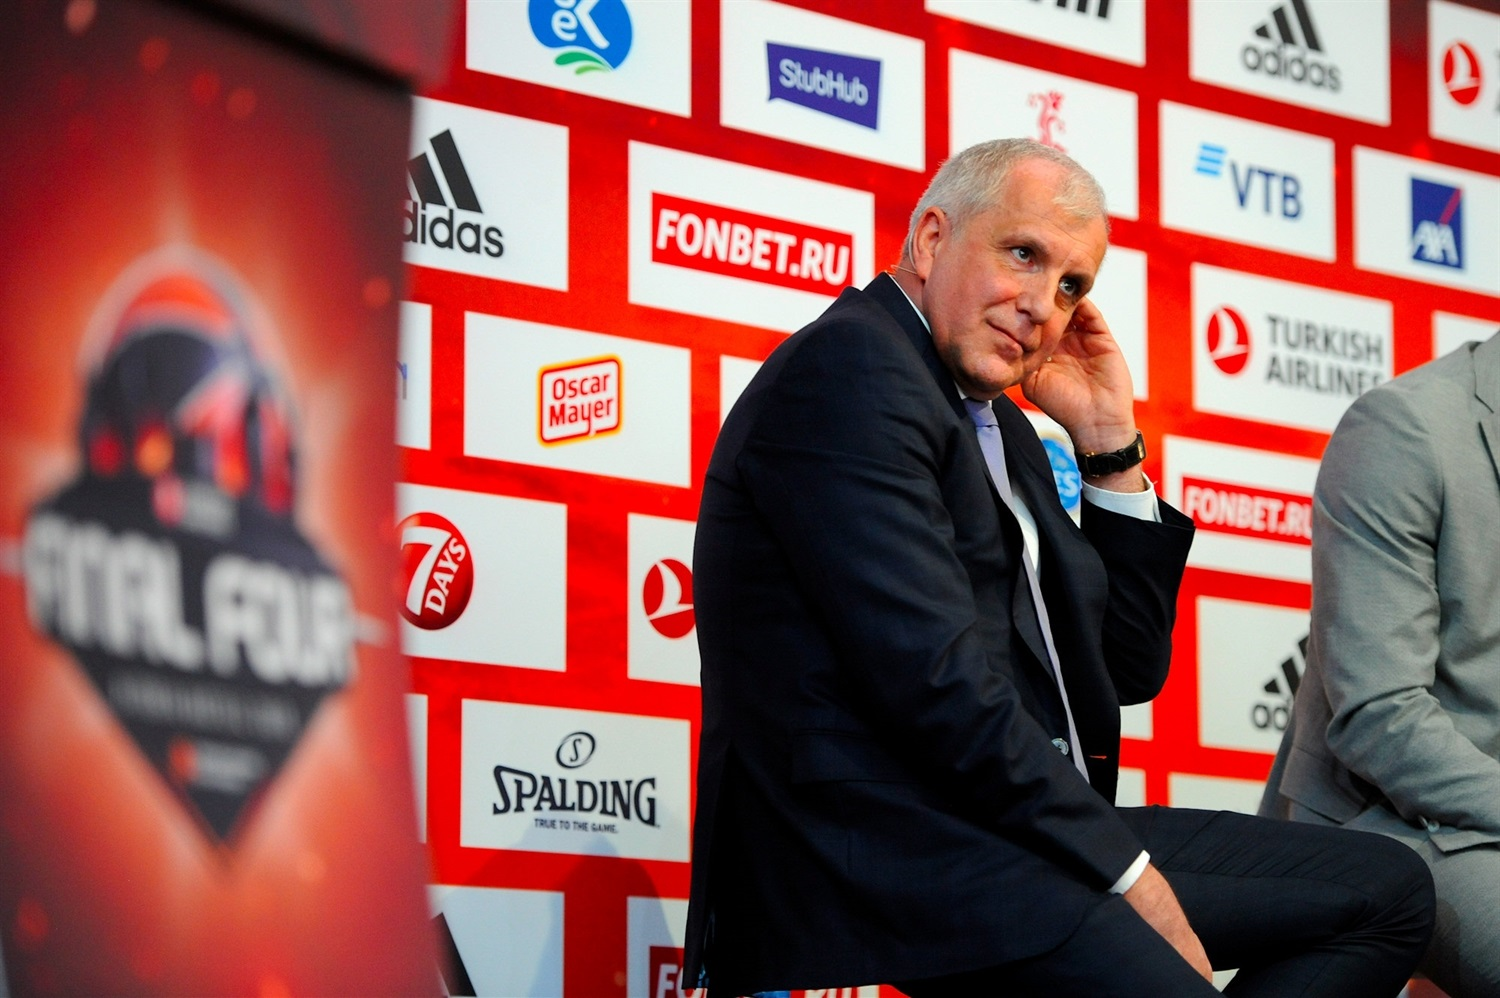 Zeljko Obradovic - Opening Press Conference - Final Four Vitoria-Gasteiz 2019 - EB18